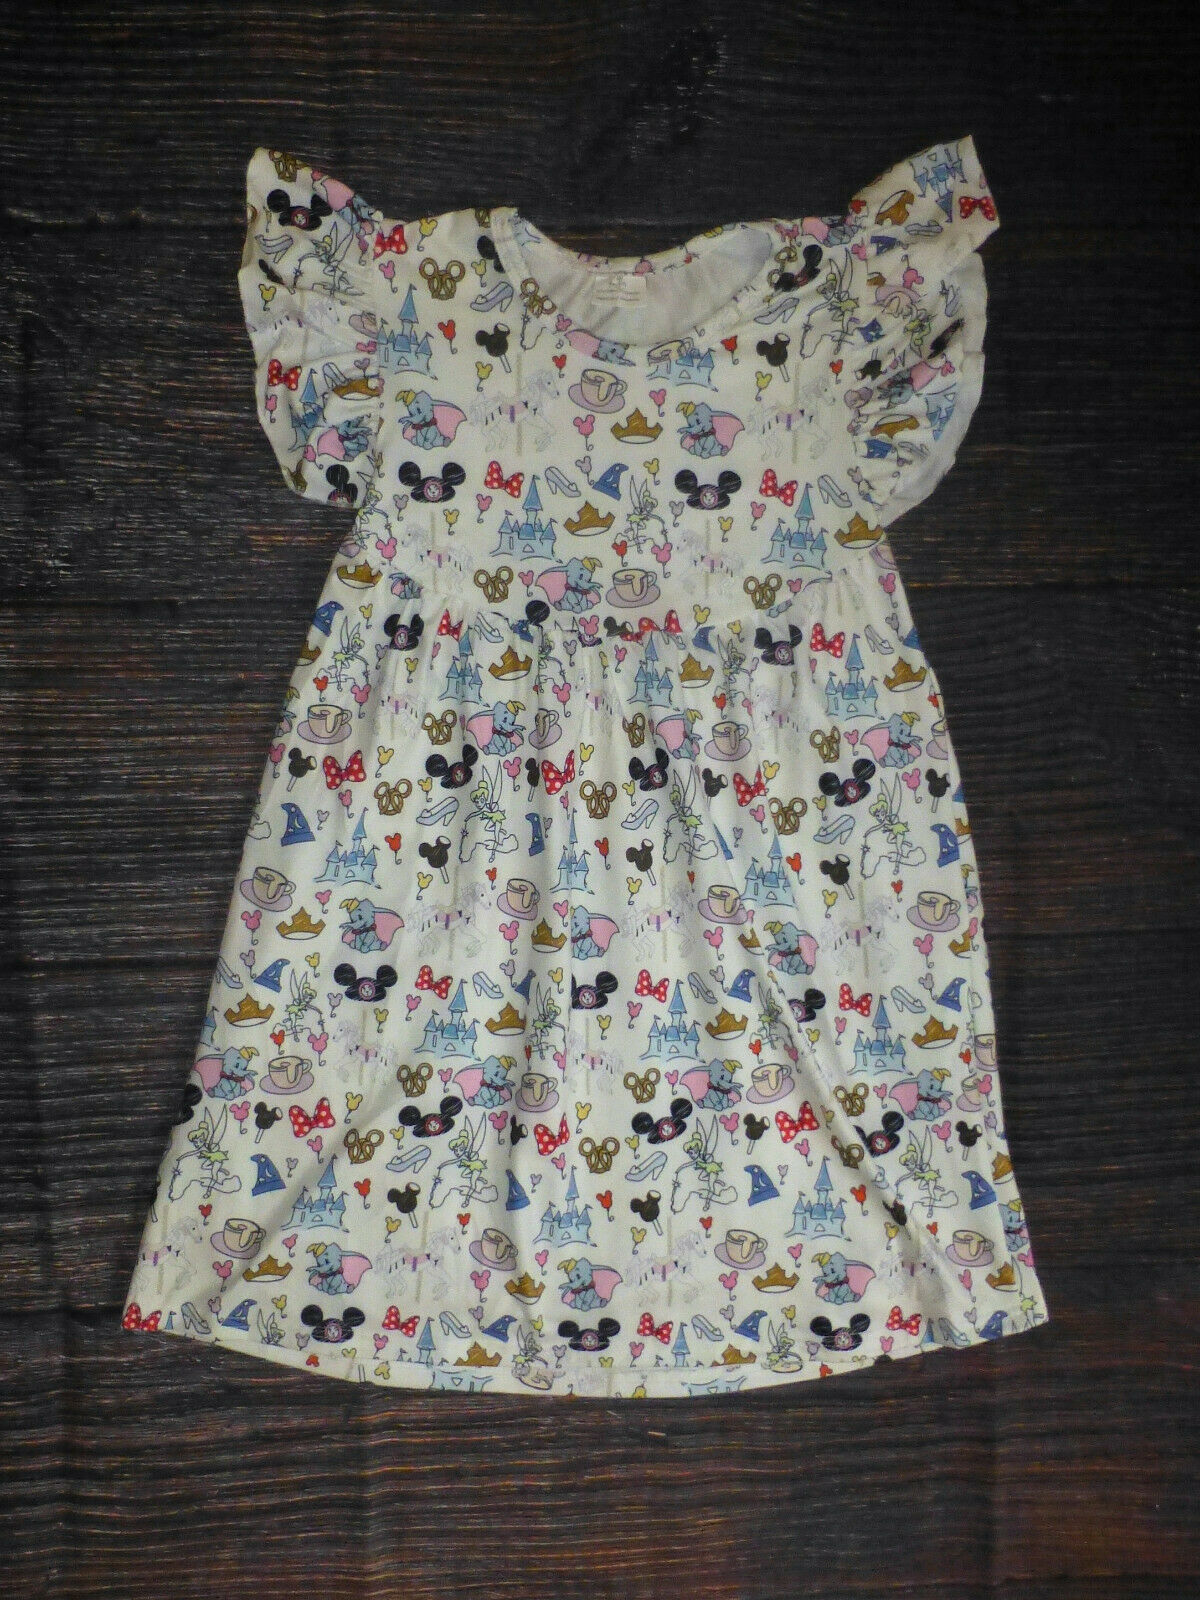 Primary image for NEW Boutique Disneyland Girls Sleeveless Ruffle Dress 18M 2T 3T 4T 5-6 6-7